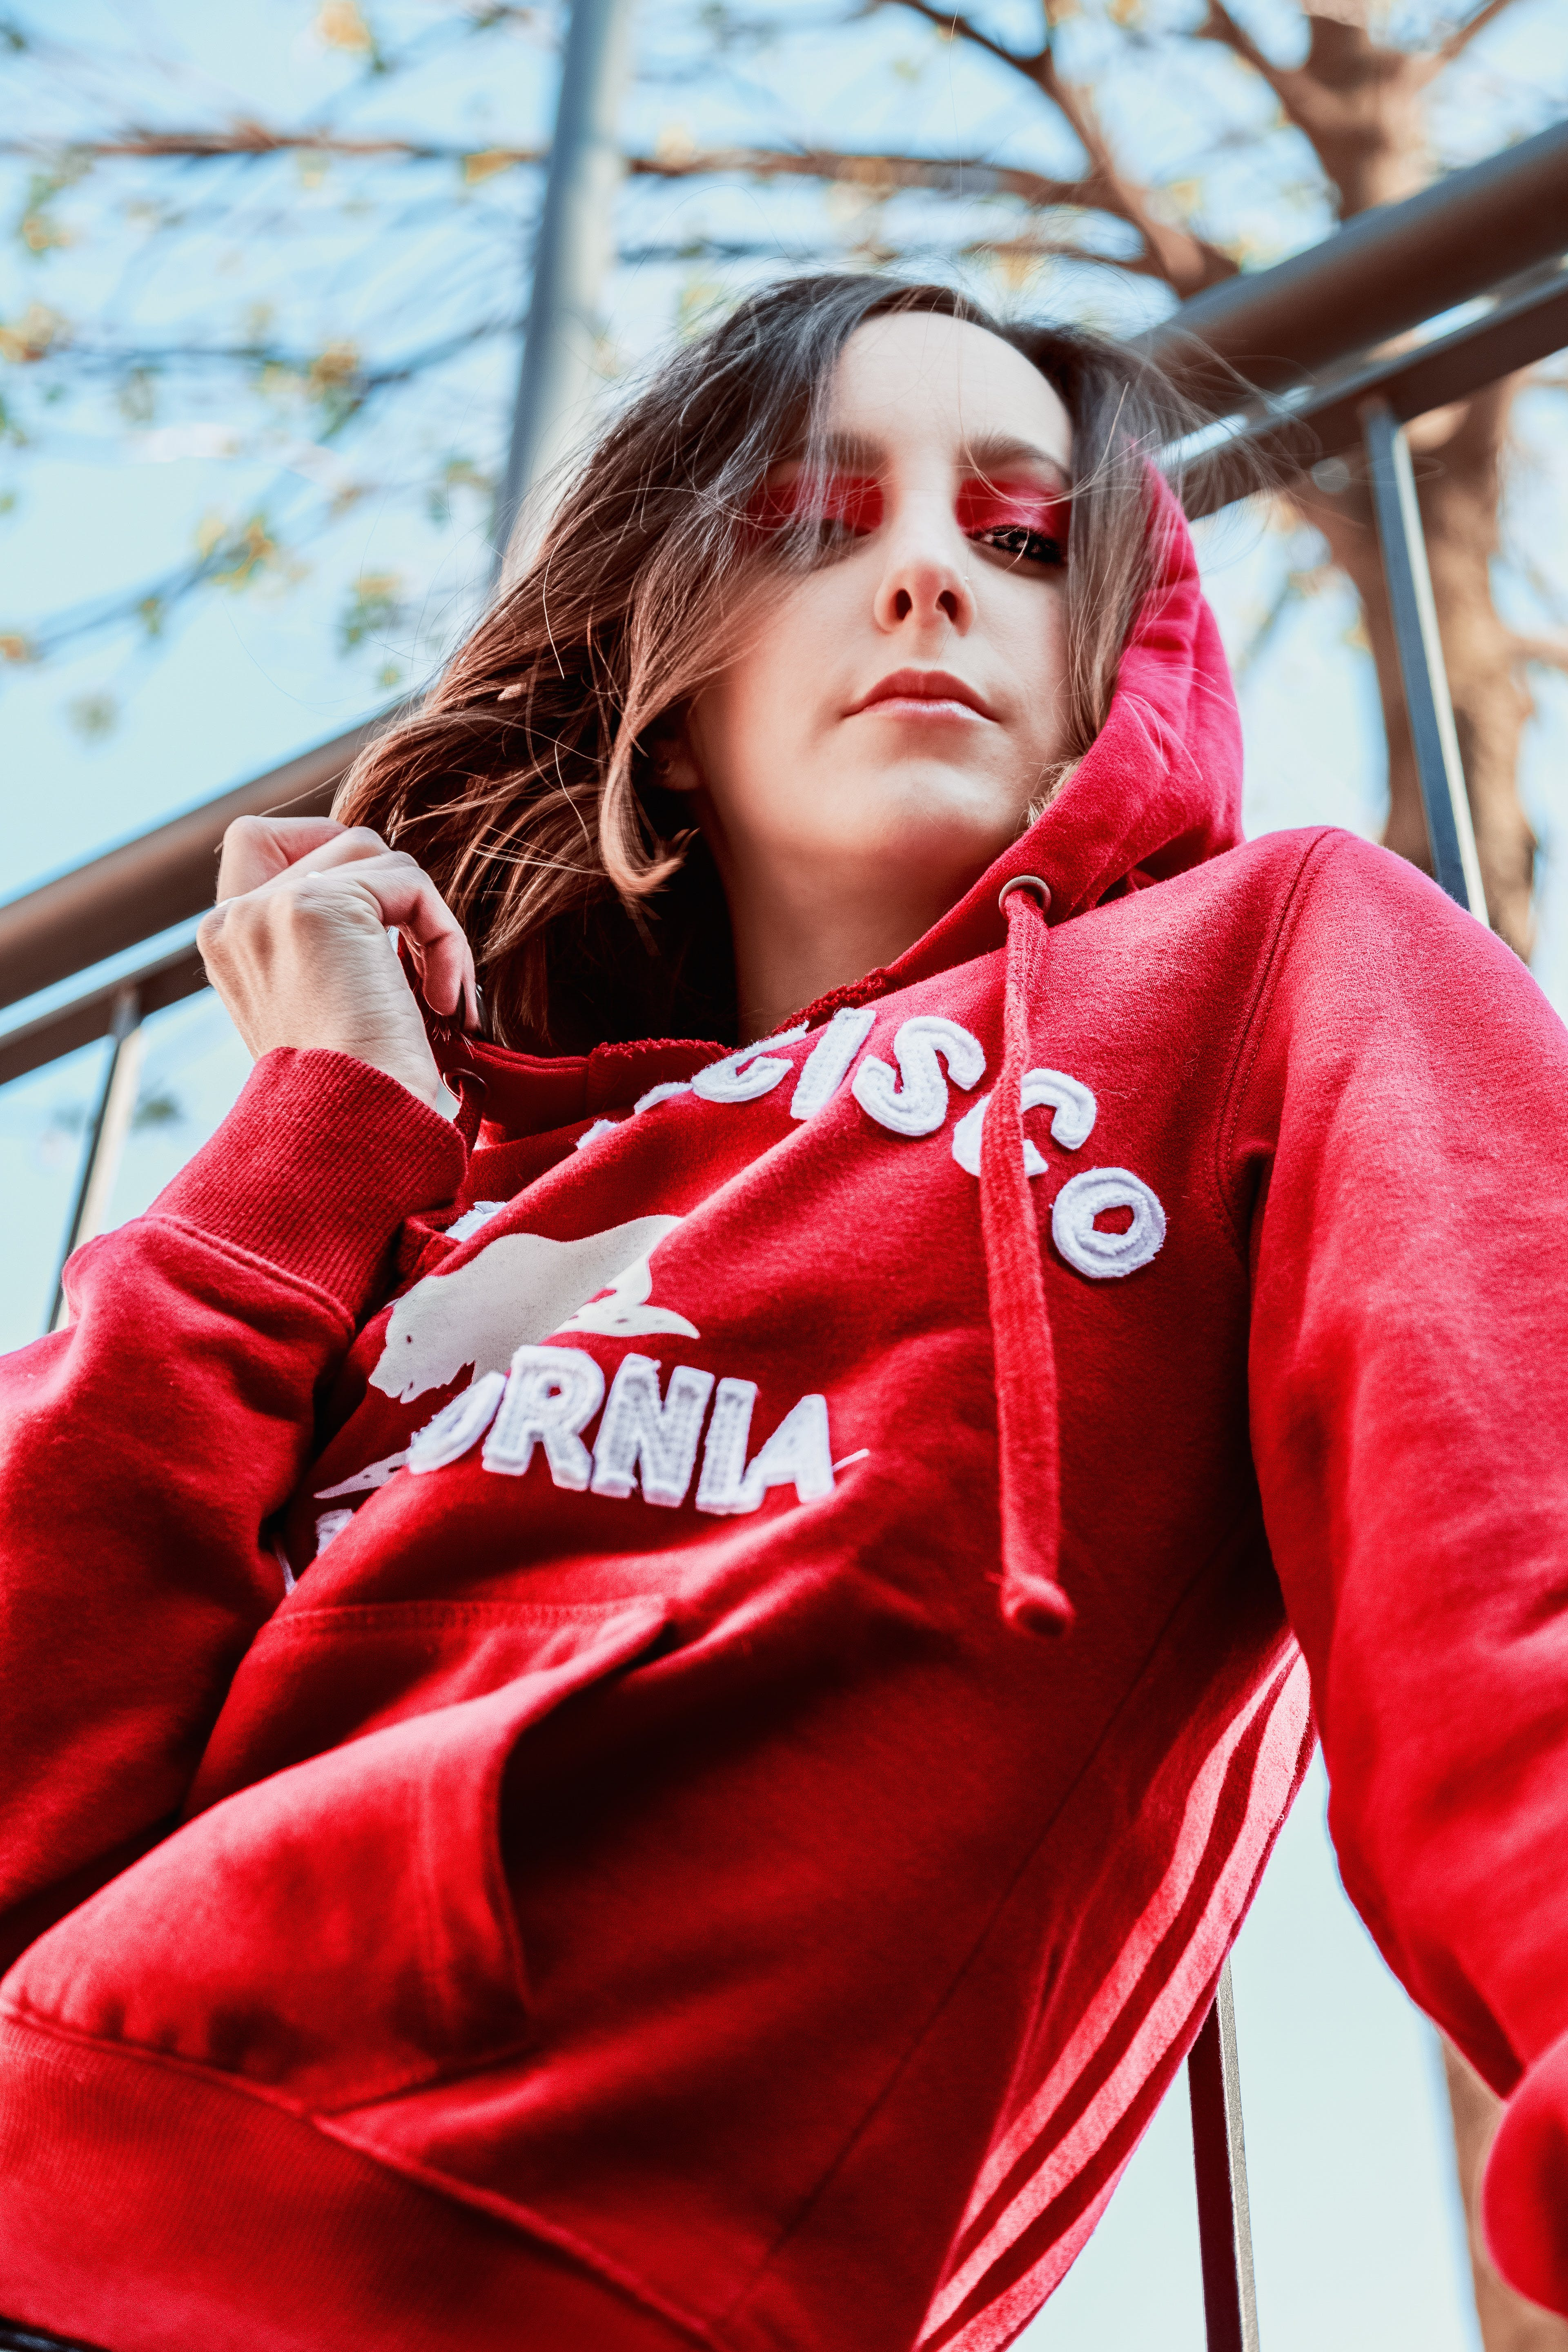 Low Angle Photography of Woman Wearing Red Hoodie